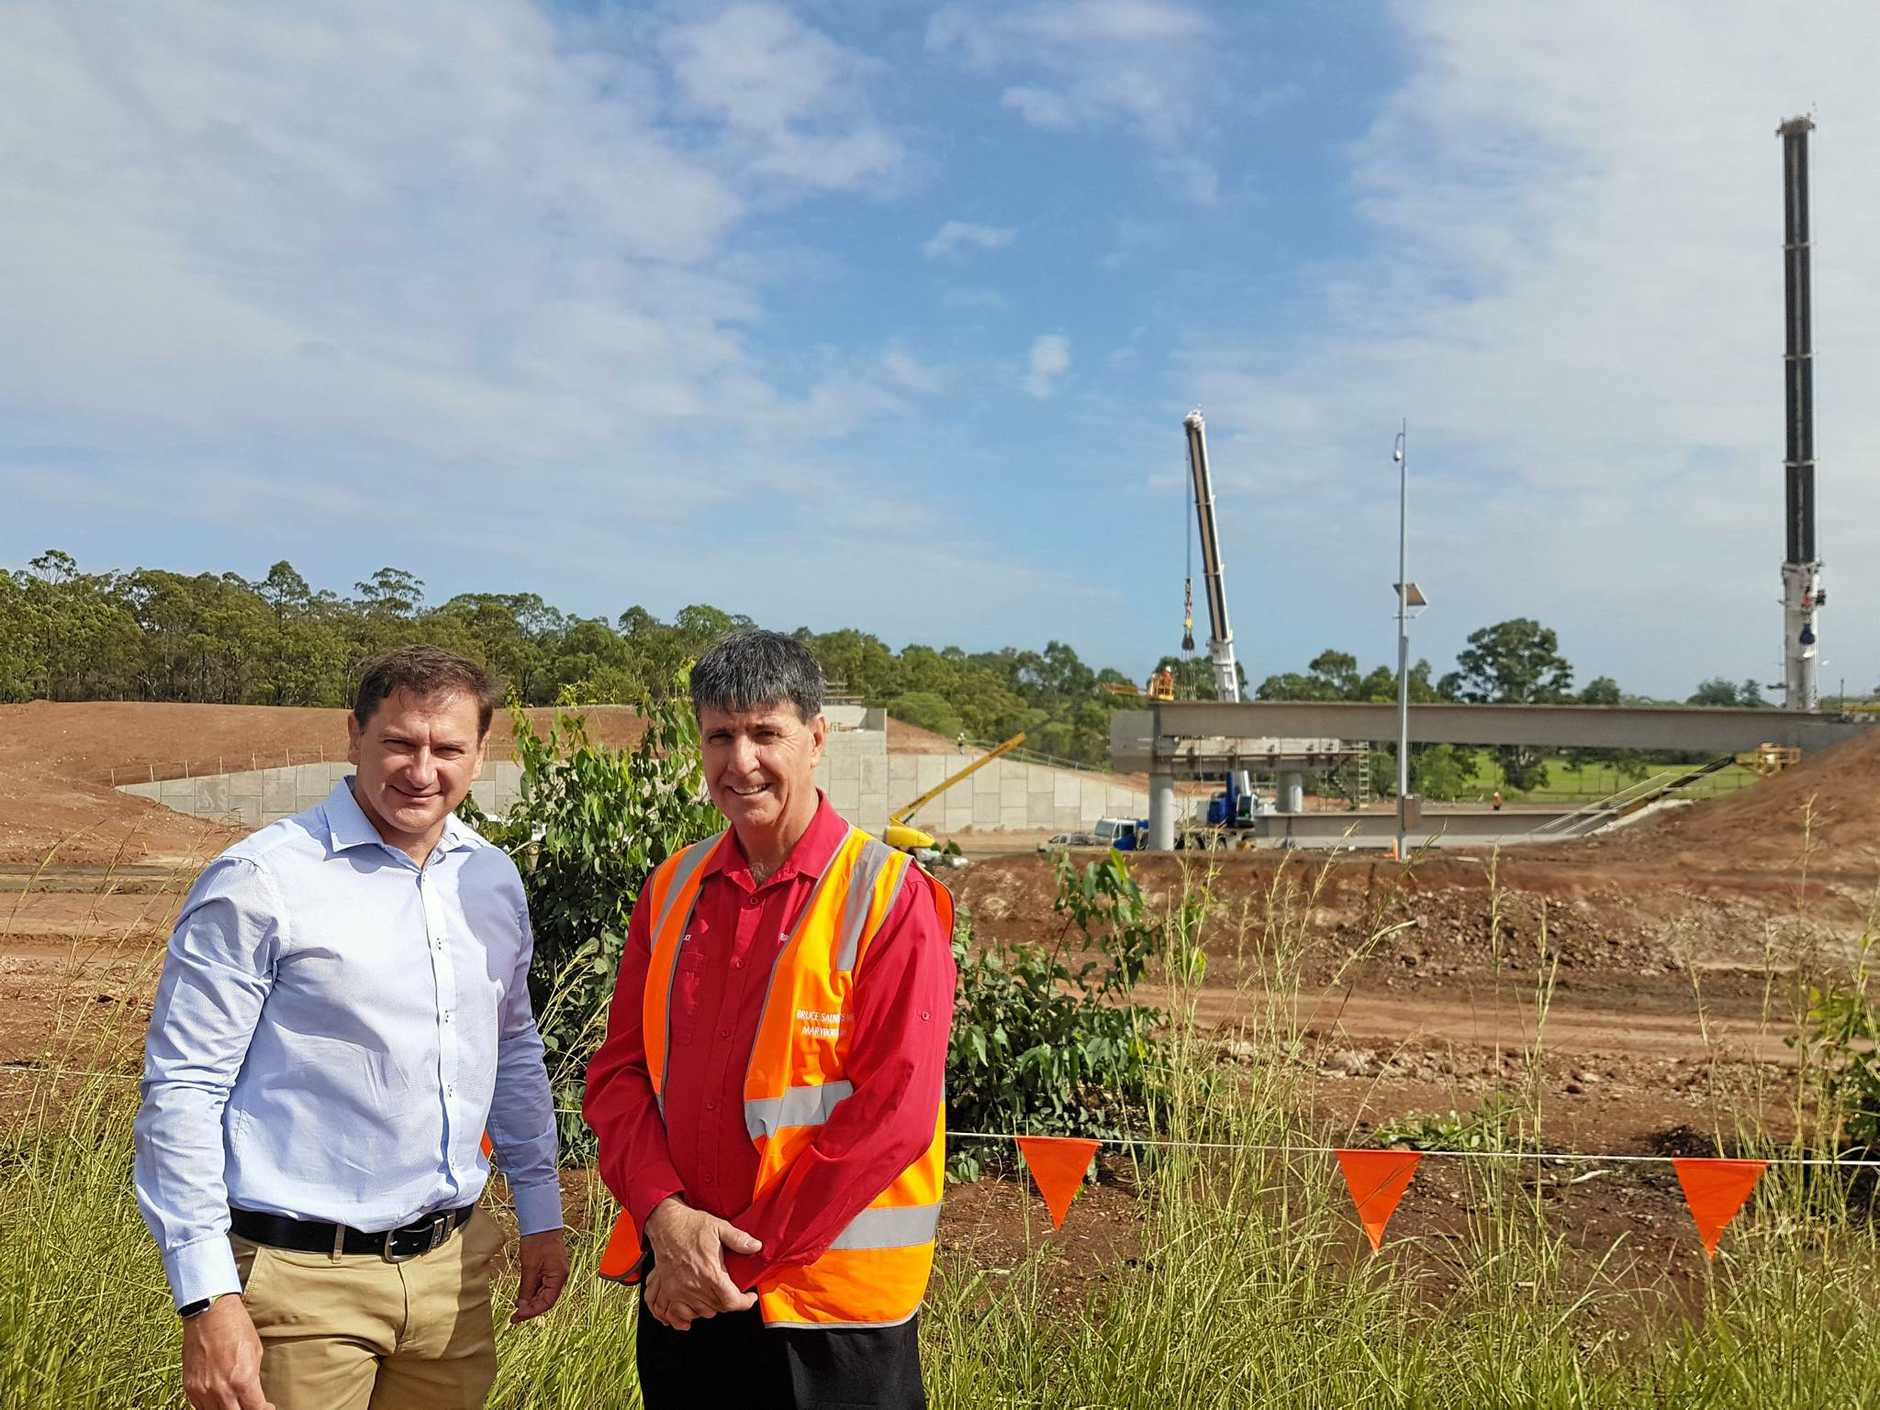 Member for Wide Bay Llew O'Brien and Maryborough MP Bruce Saunders at the Tinana interchange site, where concrete girders were installed in the latest upgrade.